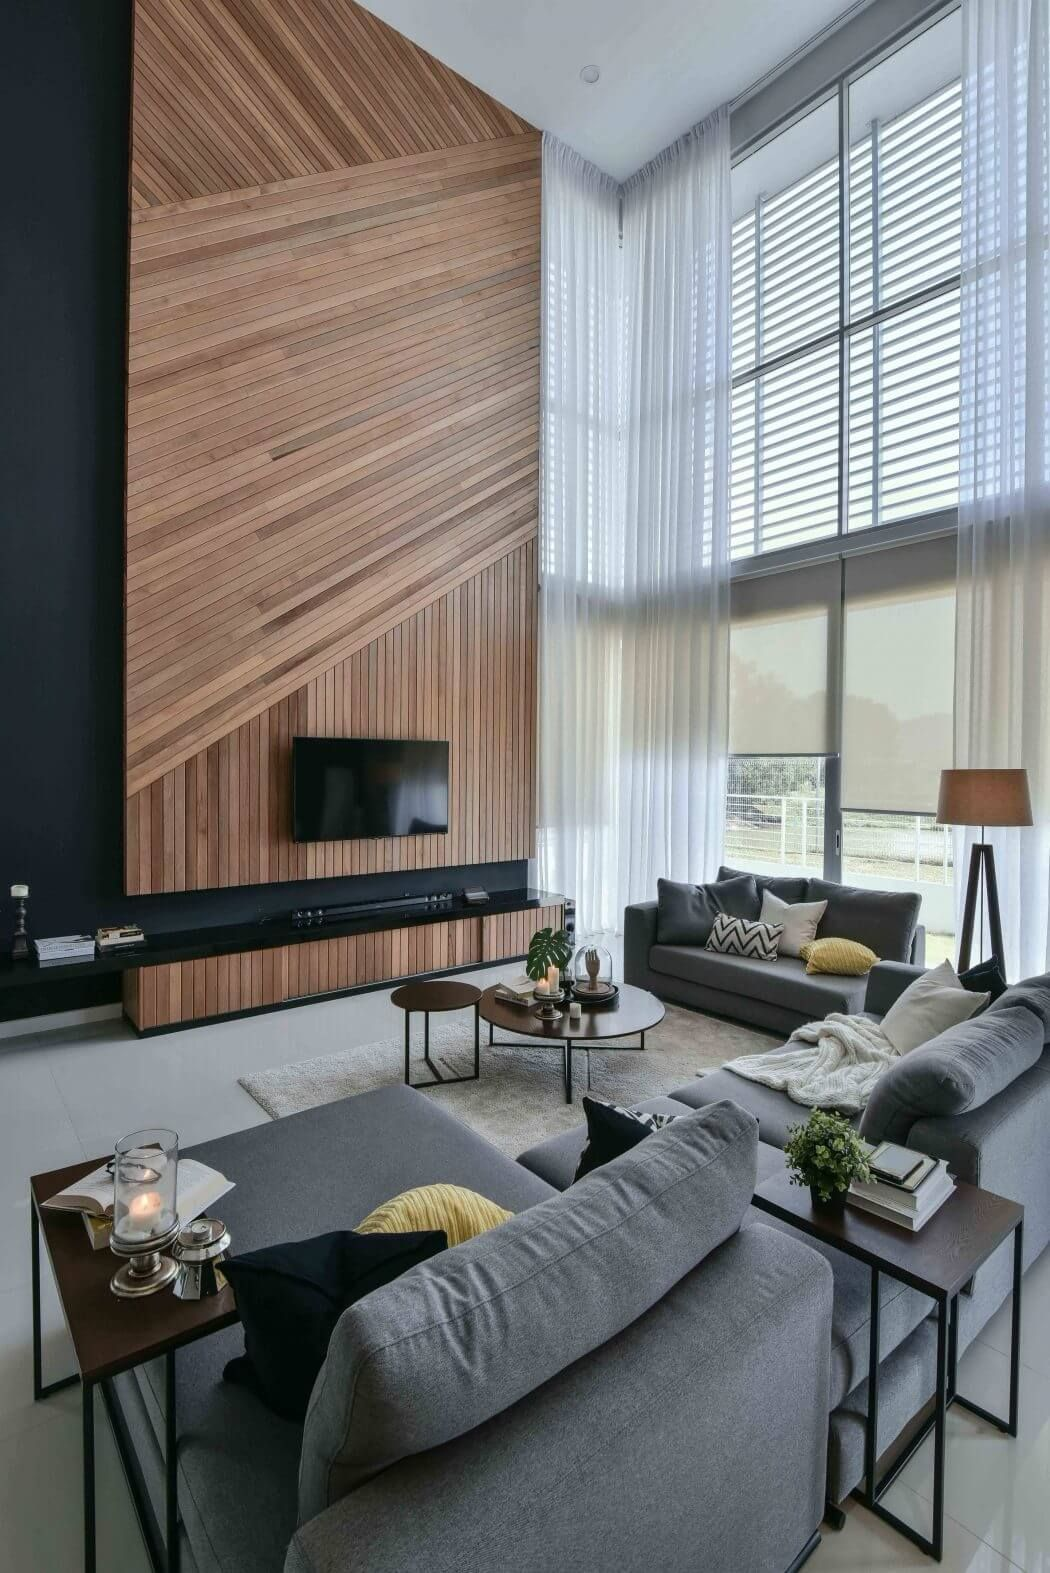 Contemporary Ceiling Designs For Living Room: Contemporary Interior Design